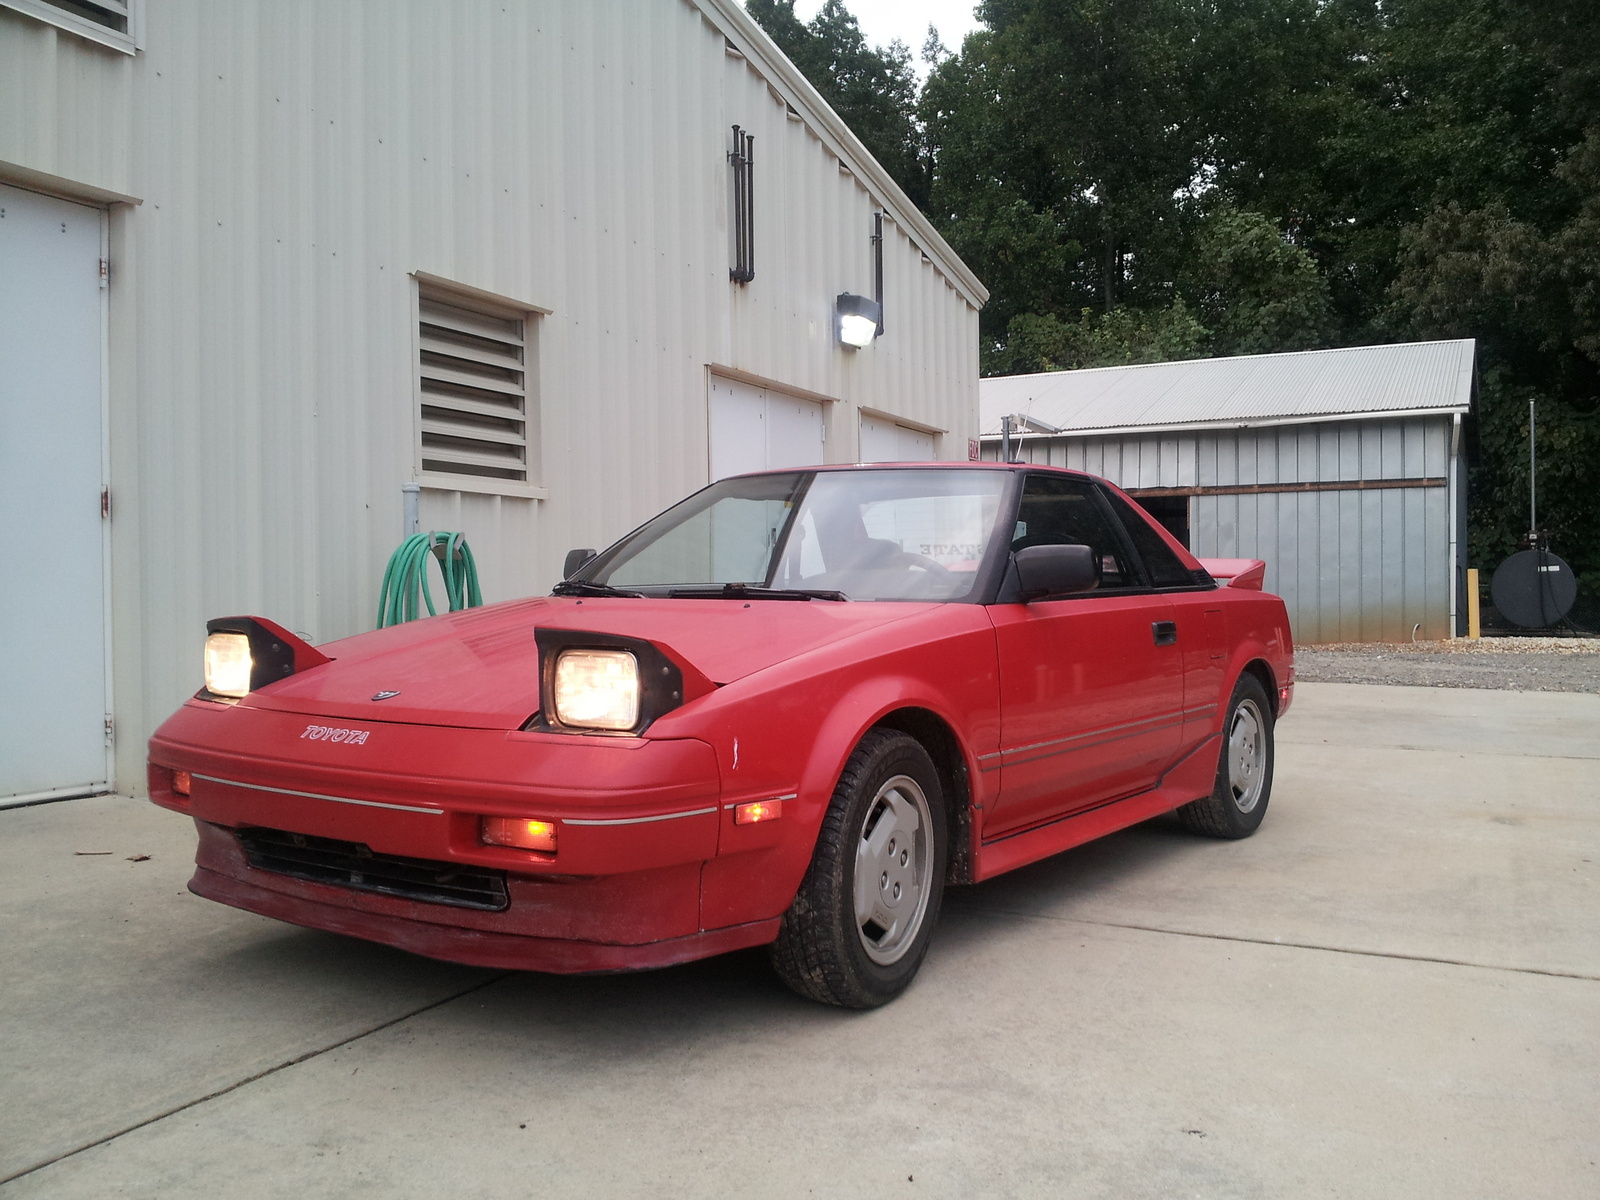 1986 Toyota Mr2 - Pictures